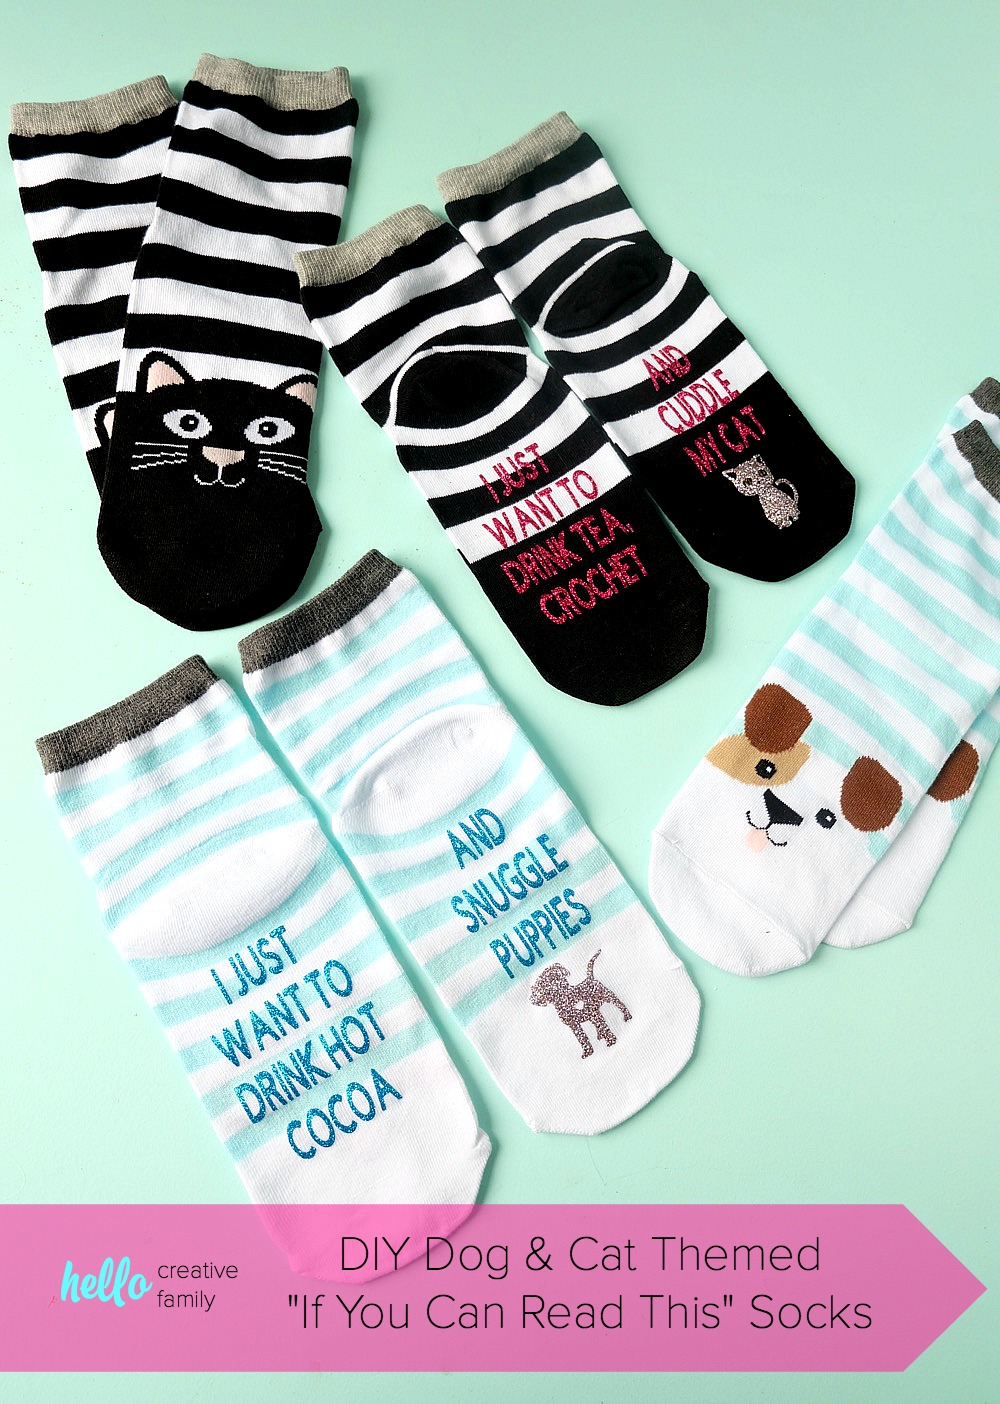 """The perfect handmade gift idea for dog and cat lovers! These DIY dog and cat themed """"If You Can Read This Socks"""" are easy to make using a Cricut Maker or Cricut Explore and turn out so cute! Change the wording using our free Cricut Cut File! This is an adorable stocking stuffer idea under $5.00! Perfect for Easter Basket Stuffers too! #cricutmaker #cricutmade #cricutproject #stockingstuffer"""